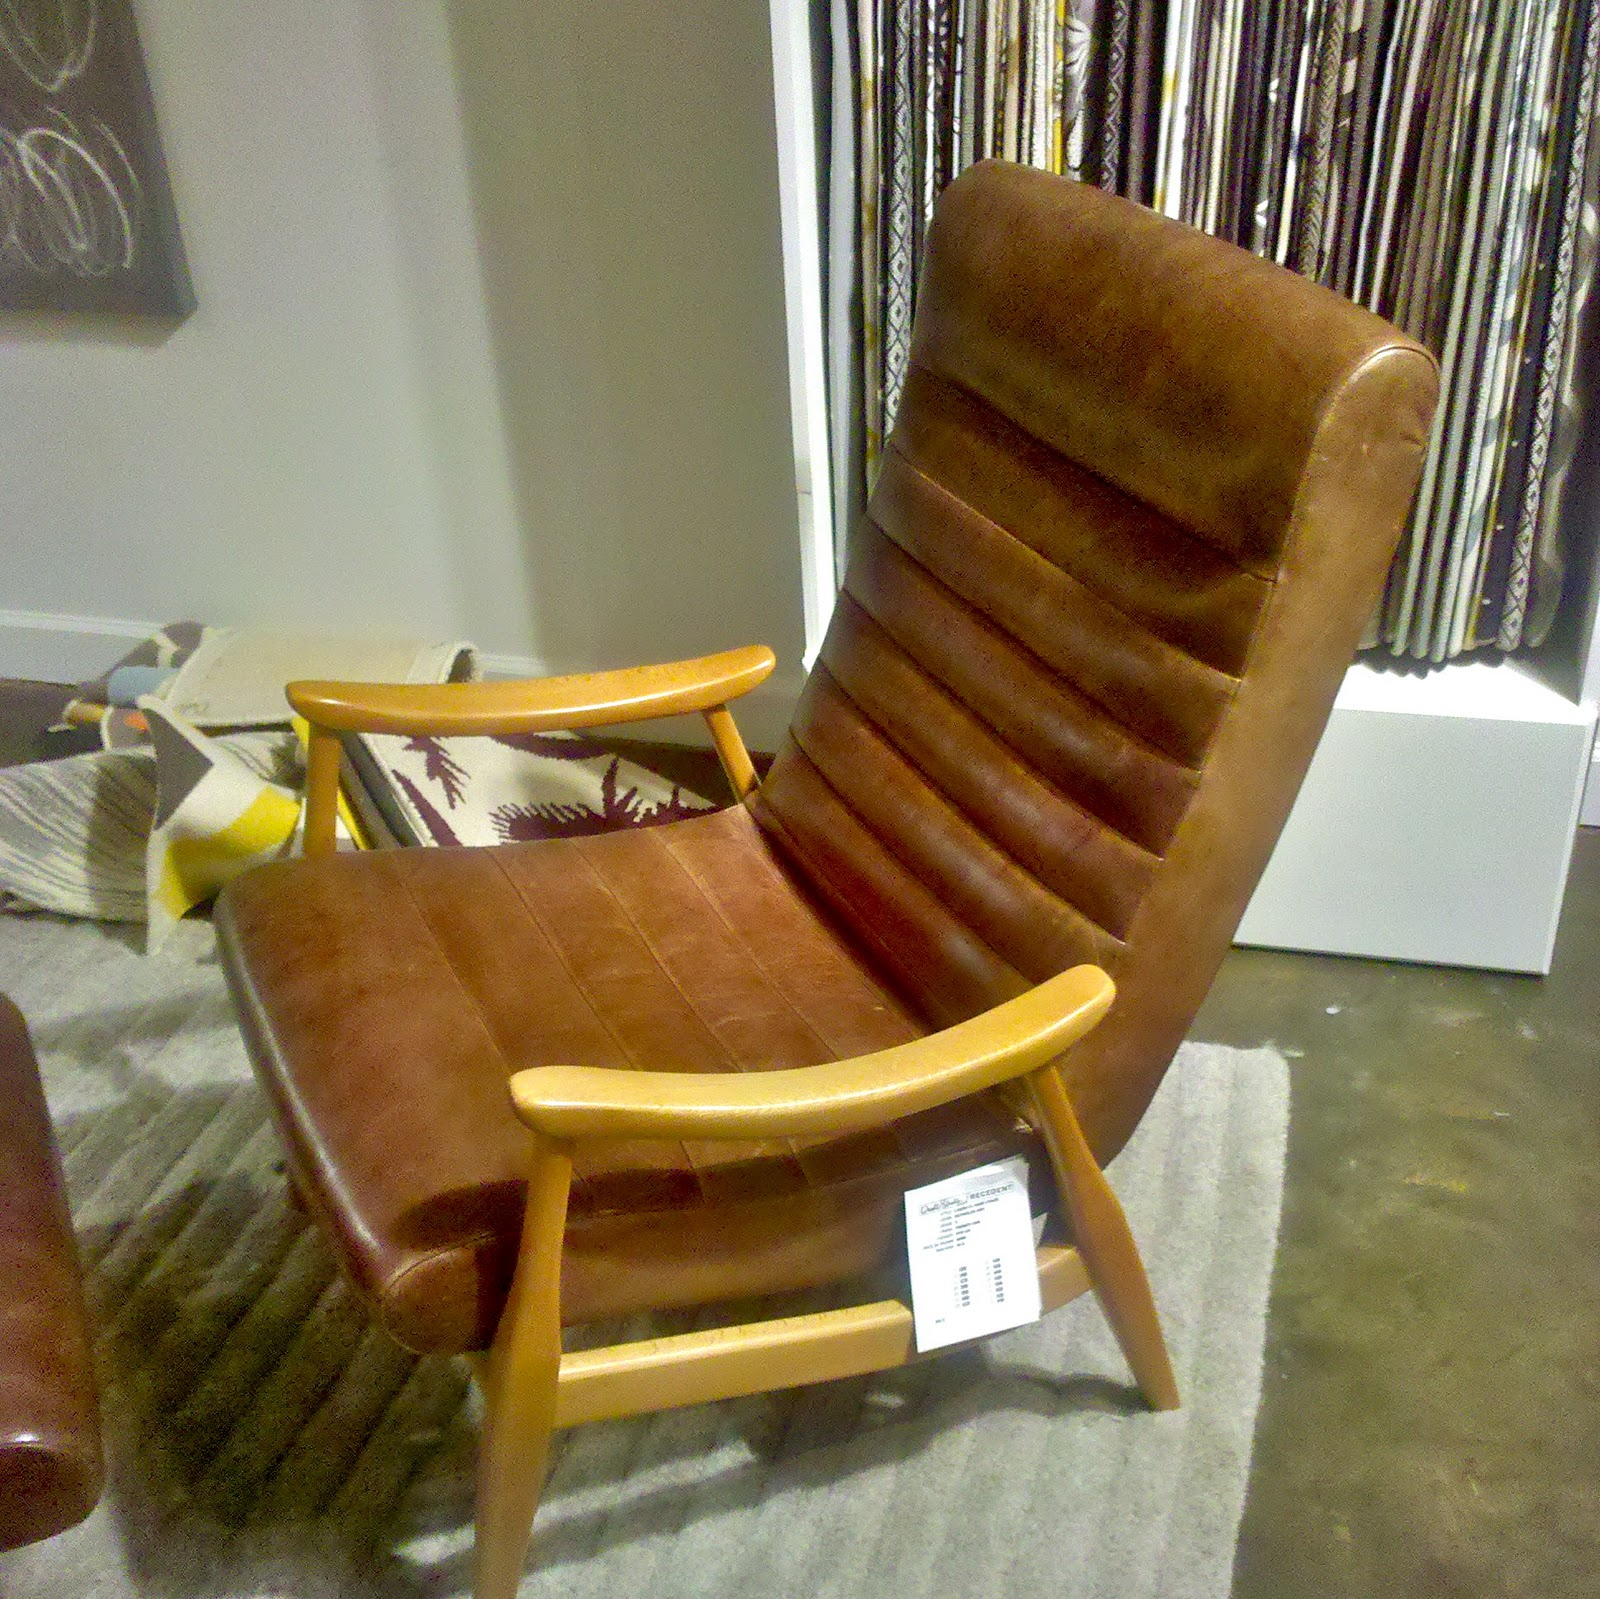 dwell studio furniture. Dwell Studio Furniture. This Hans Leather Chair Is Also Headed Our Way! Furniture \